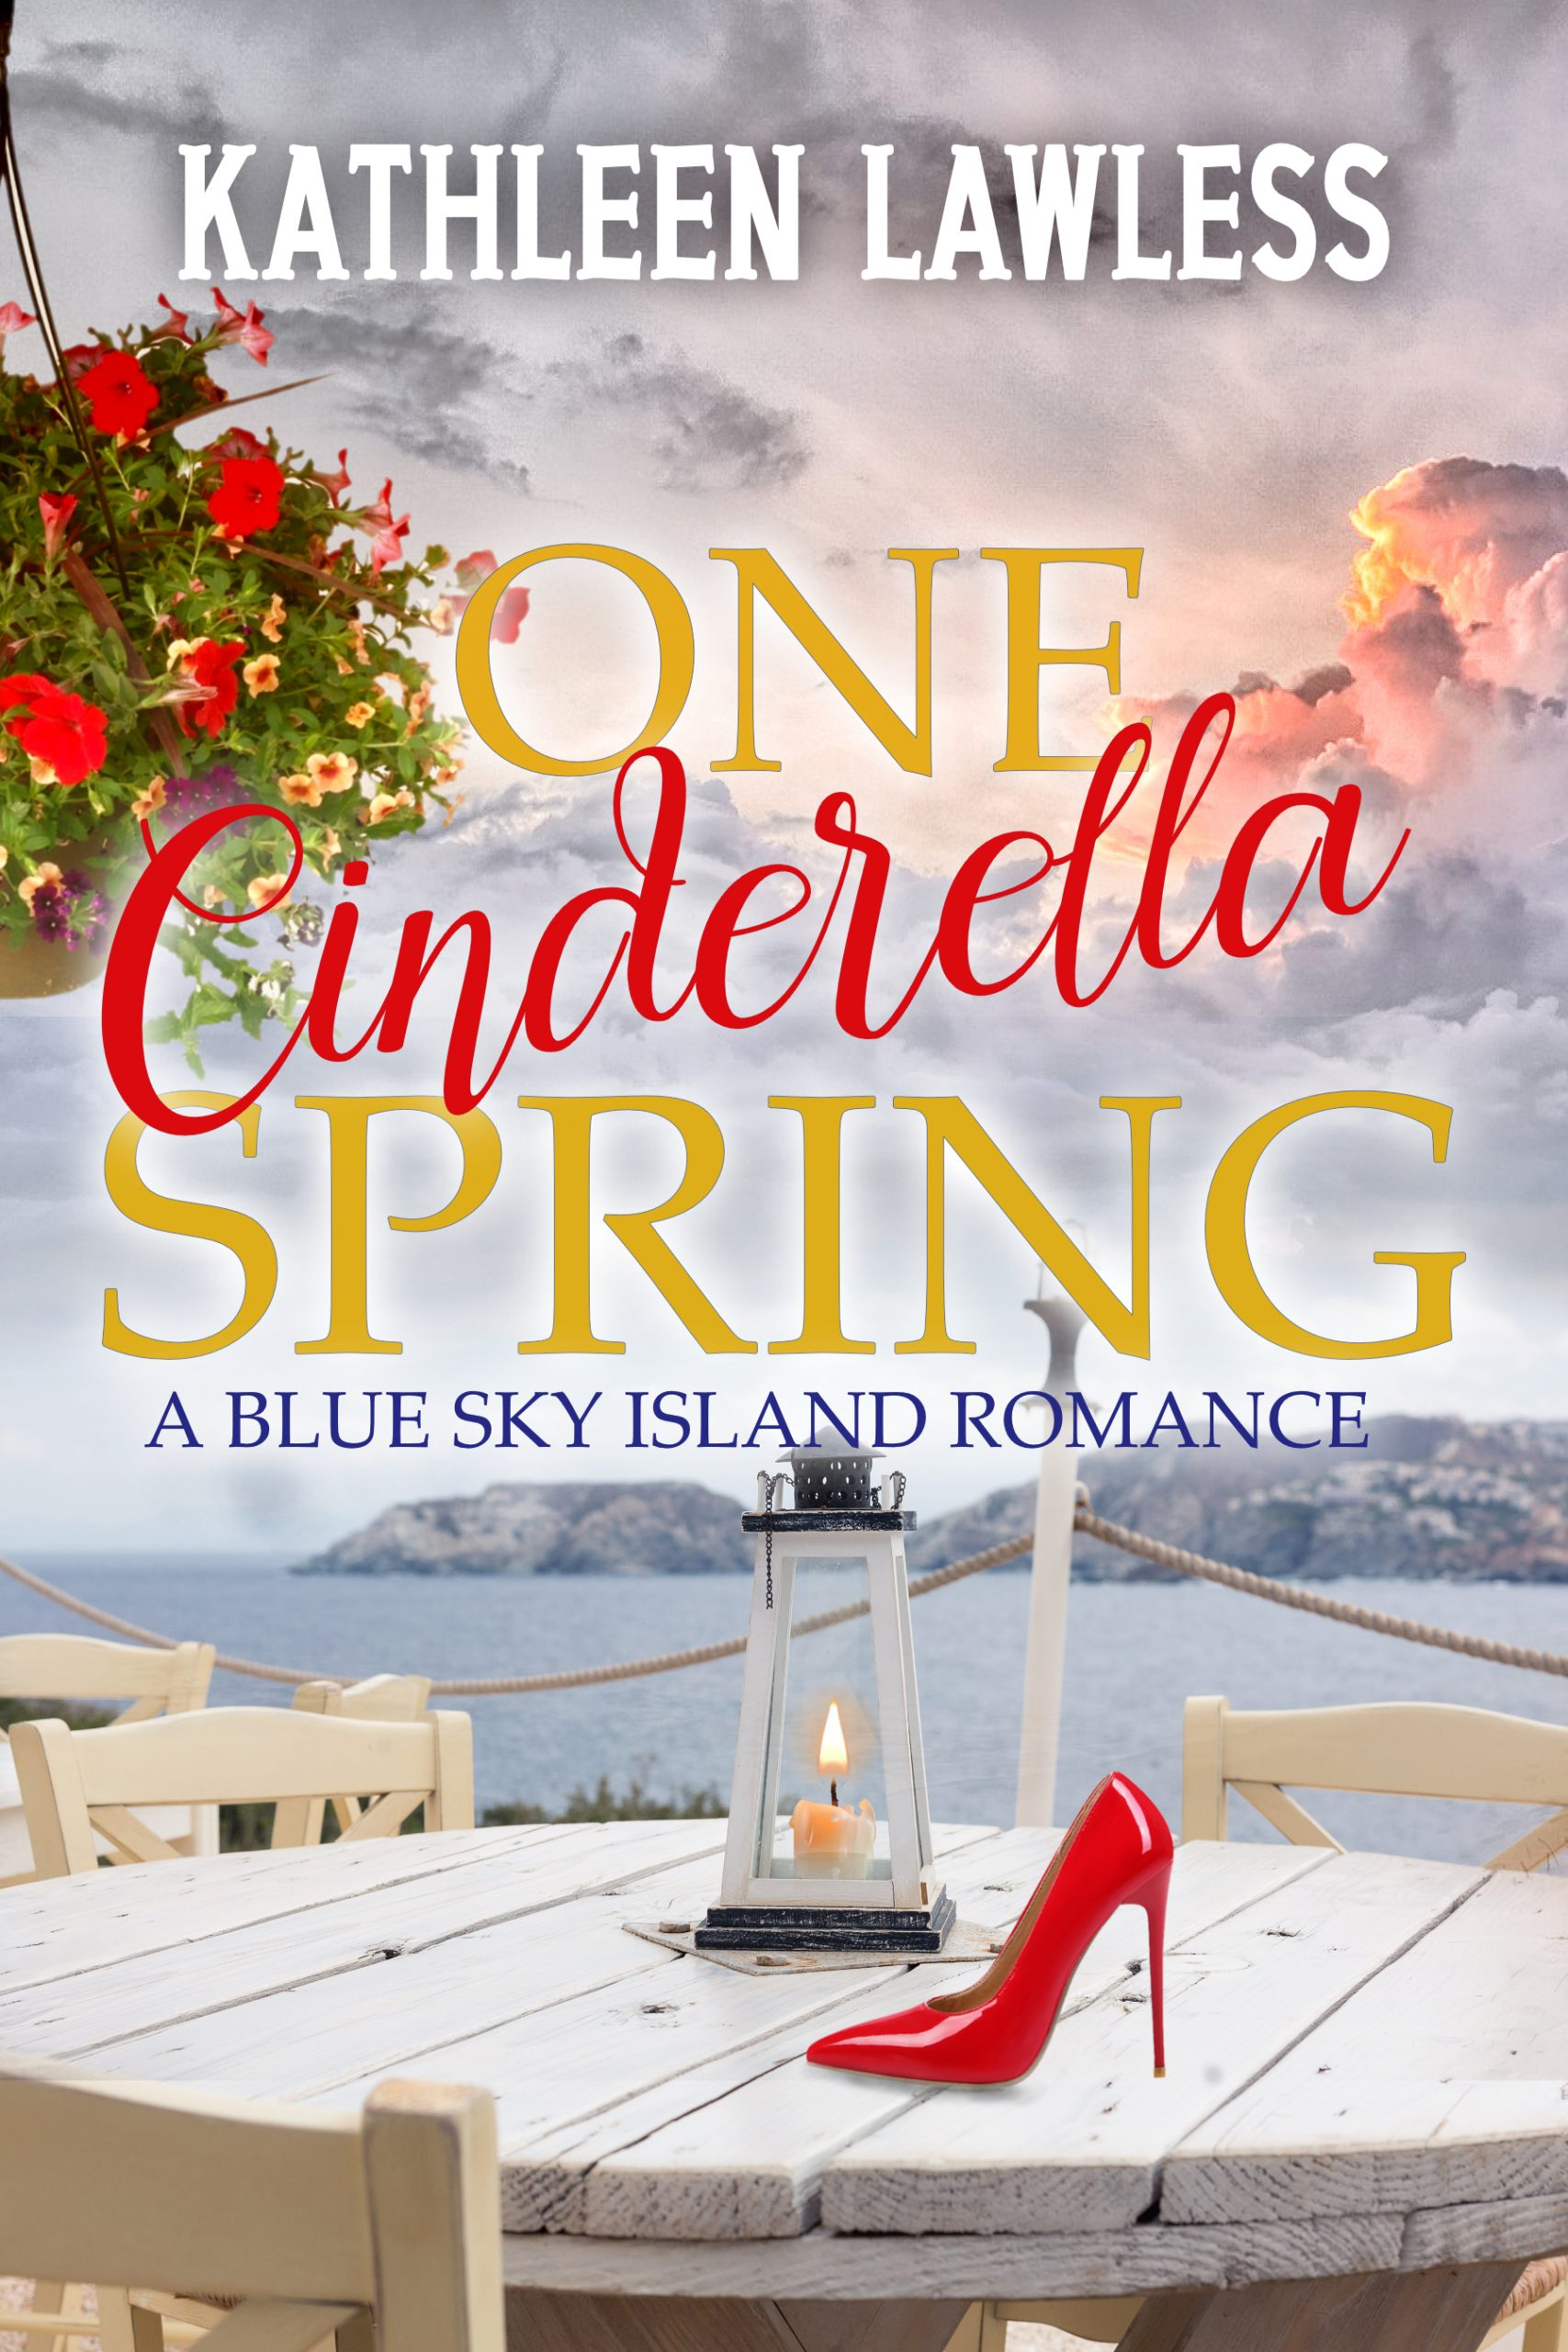 One Cinderella Spring by Kathleen Lawless